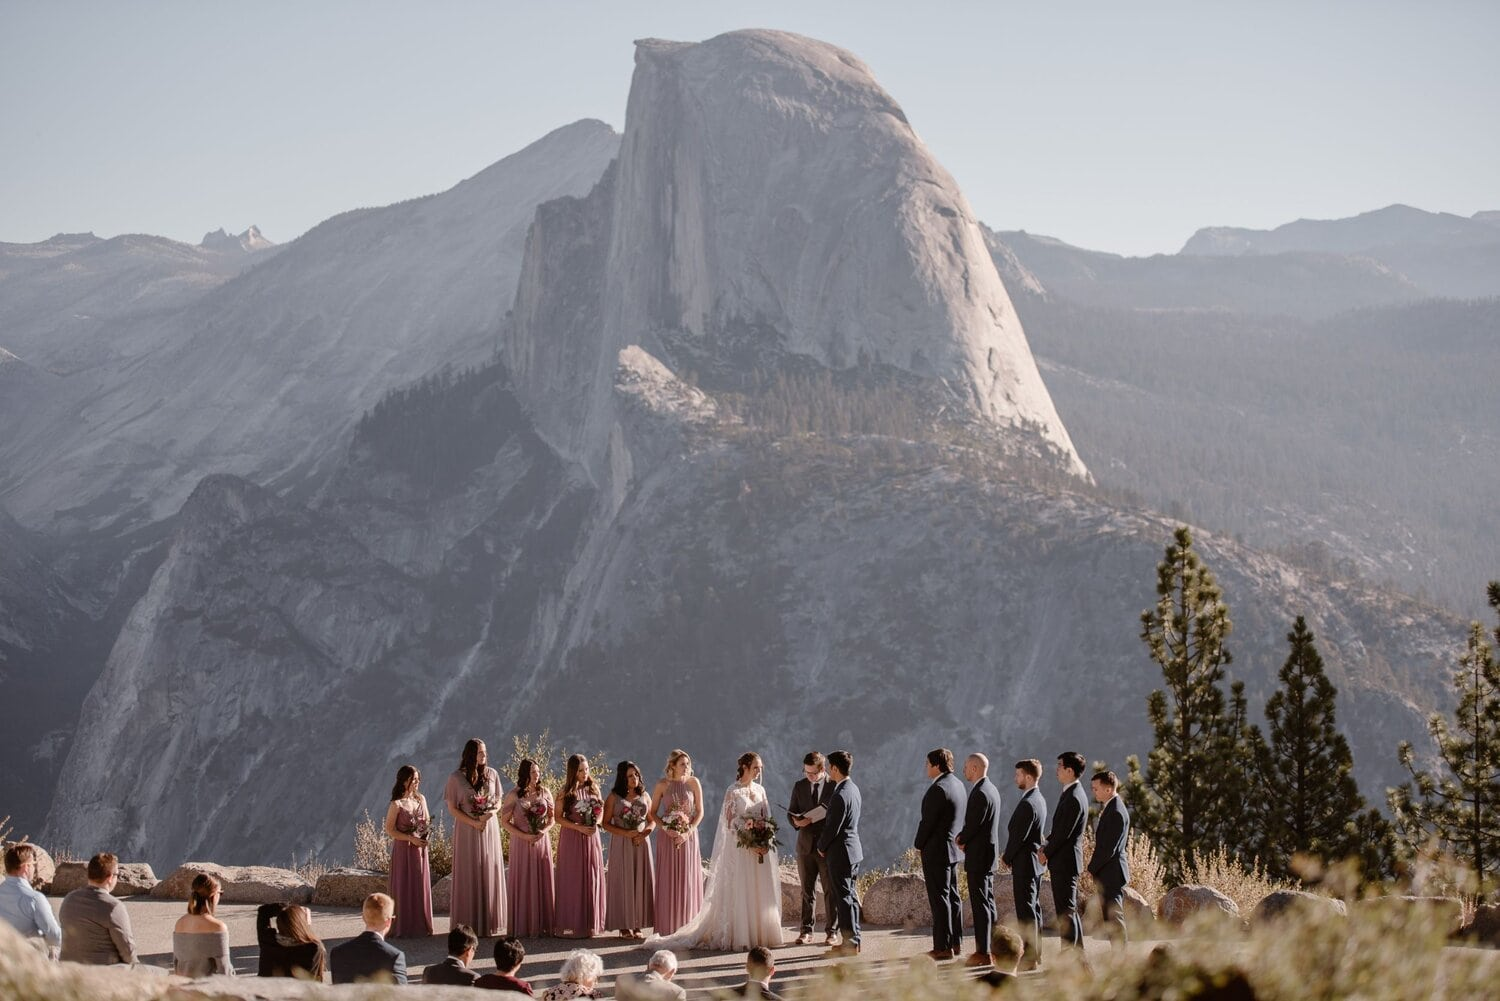 Bride and groom have an intimate wedding ceremony in the mountains with their family and friends.